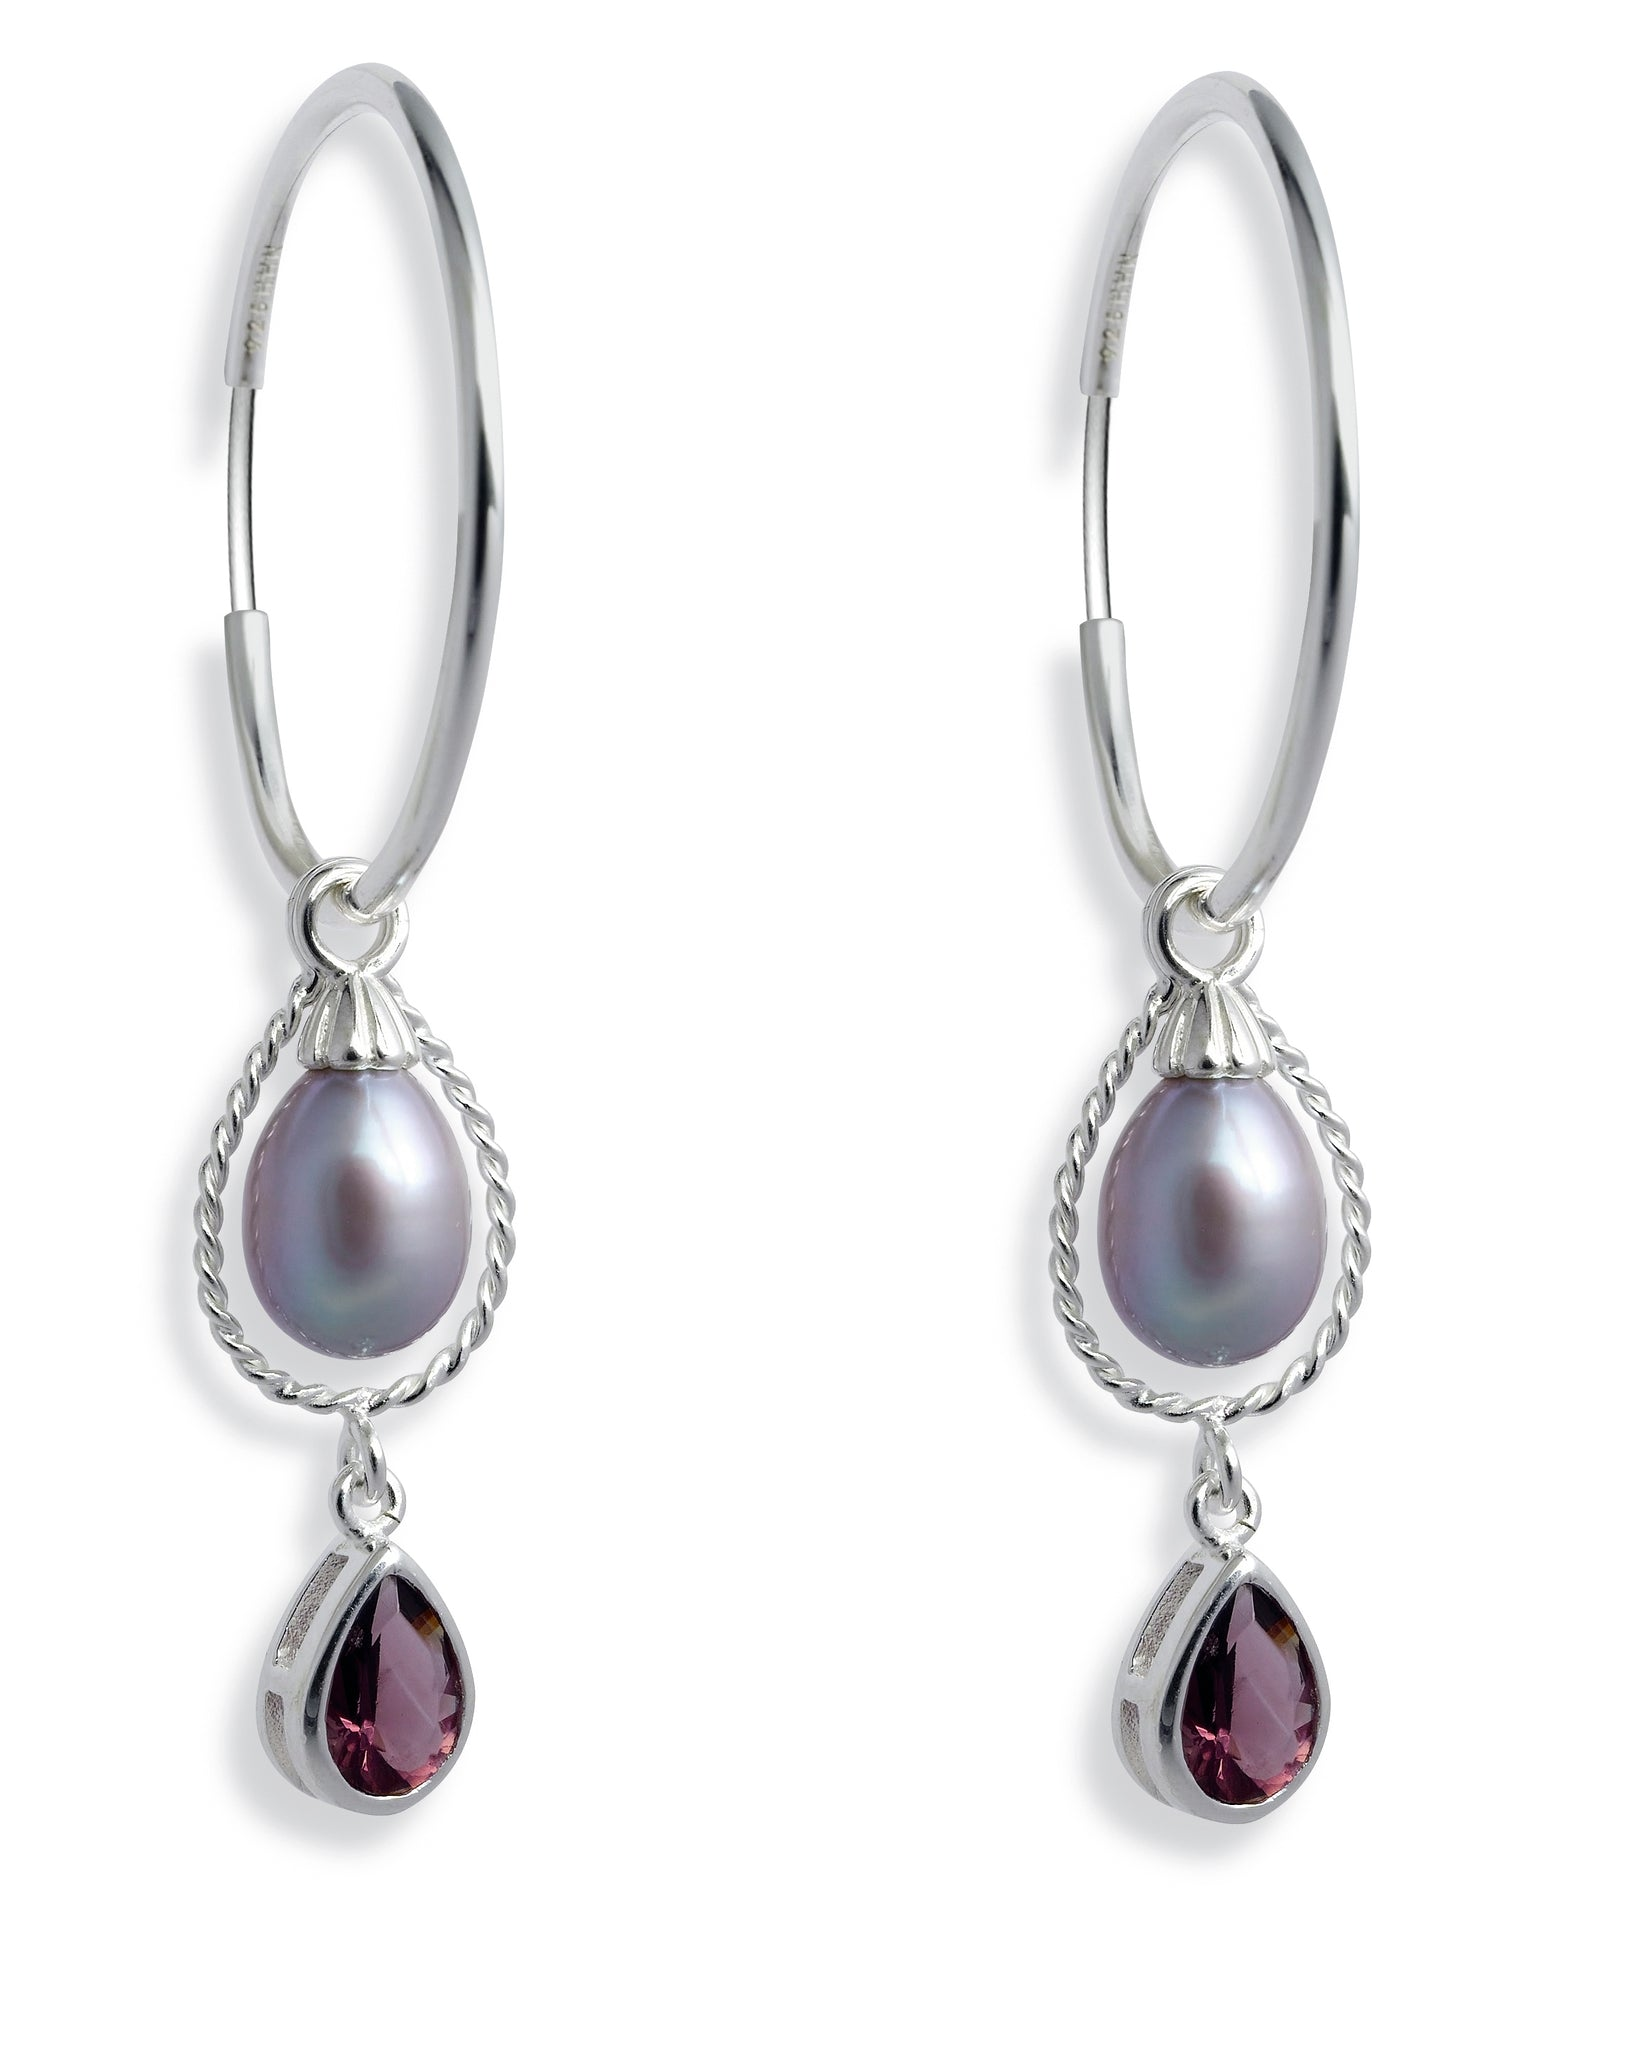 Earring combination 'VELVES' from Spinning Jewelry, featuring hoops and hangers in sterling silver, freshwater pearls and purple glass.